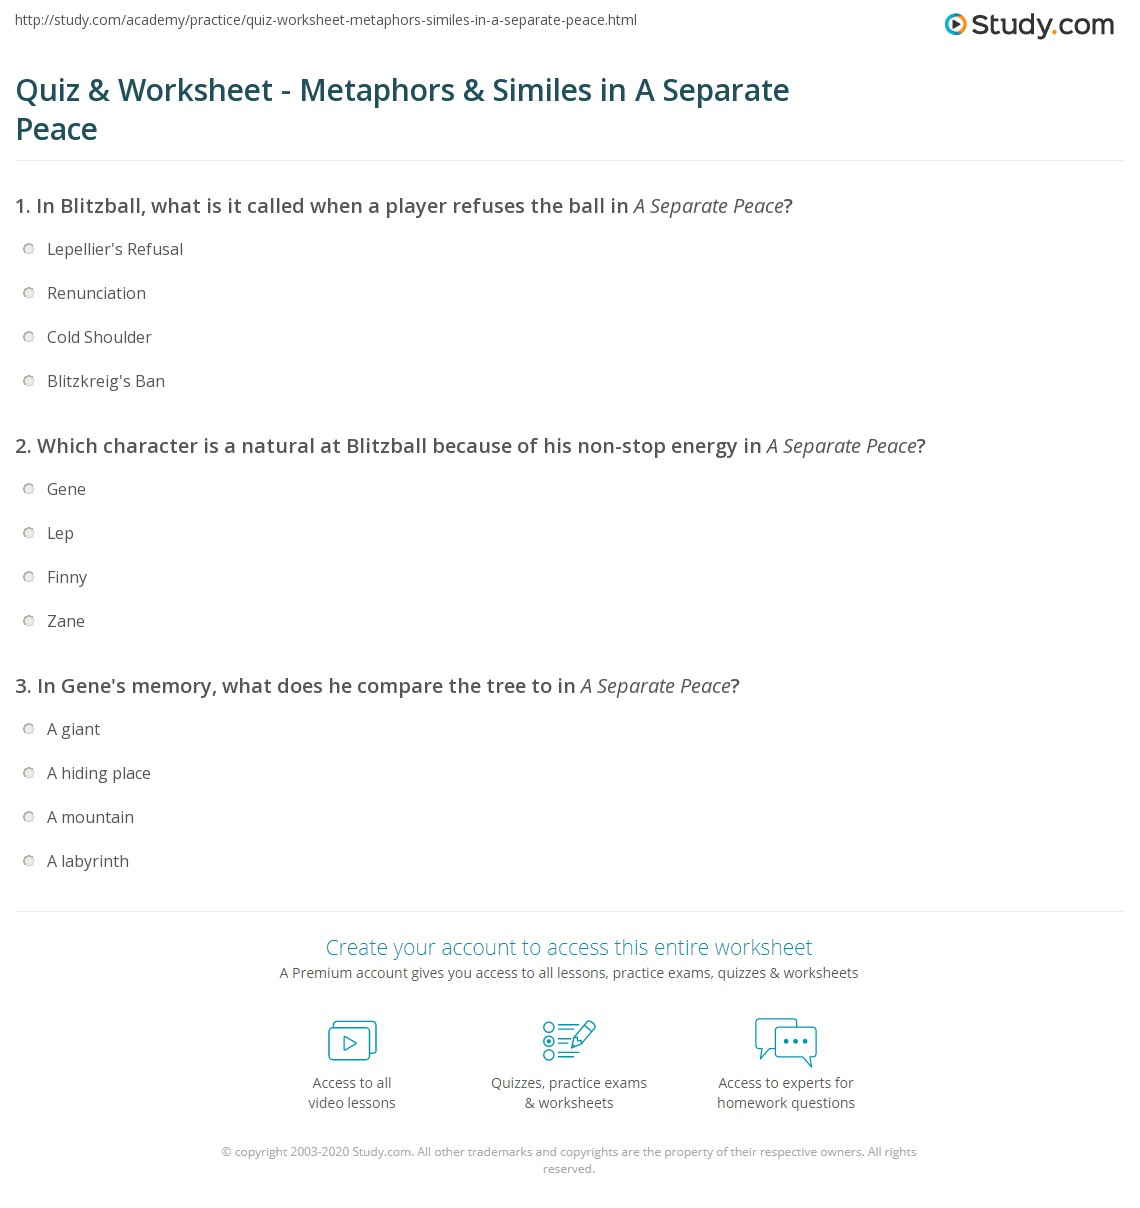 Quiz Worksheet Metaphors Similes in A Separate Peace – Metaphors Worksheet